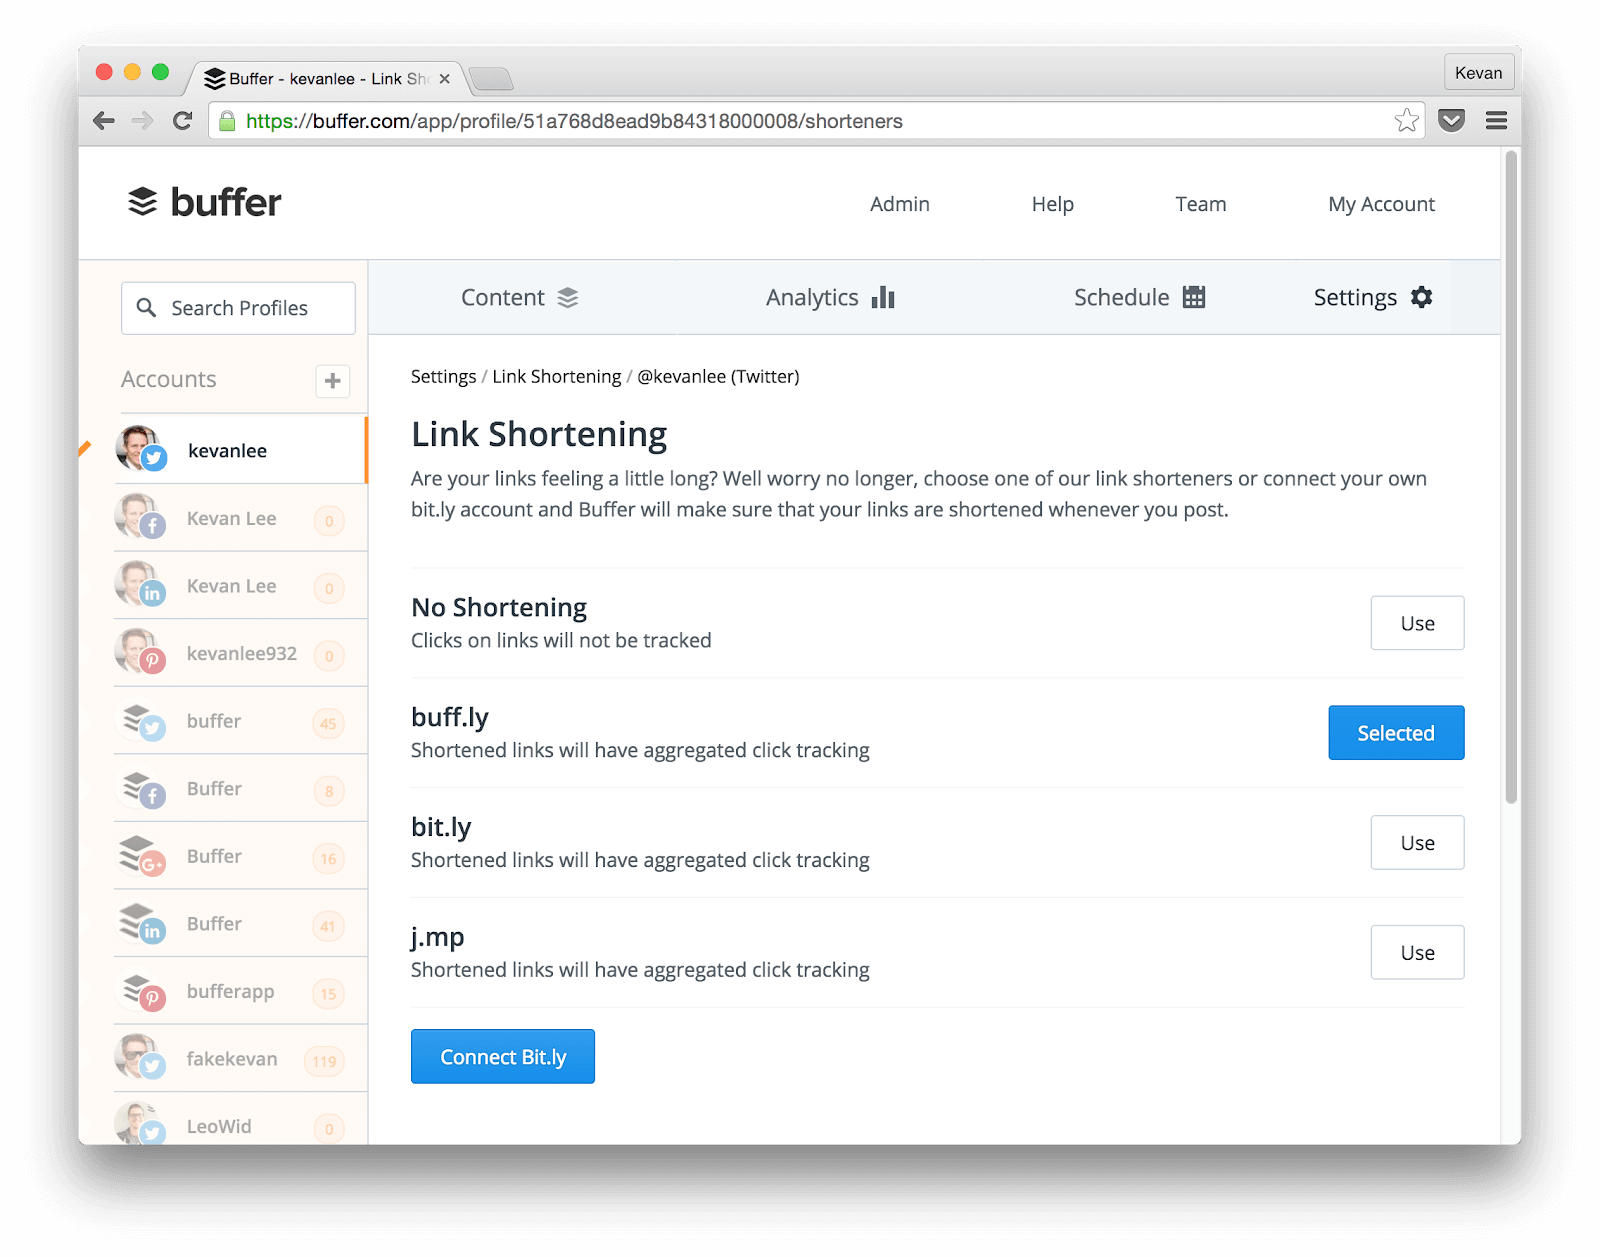 Buffer's link shortening page